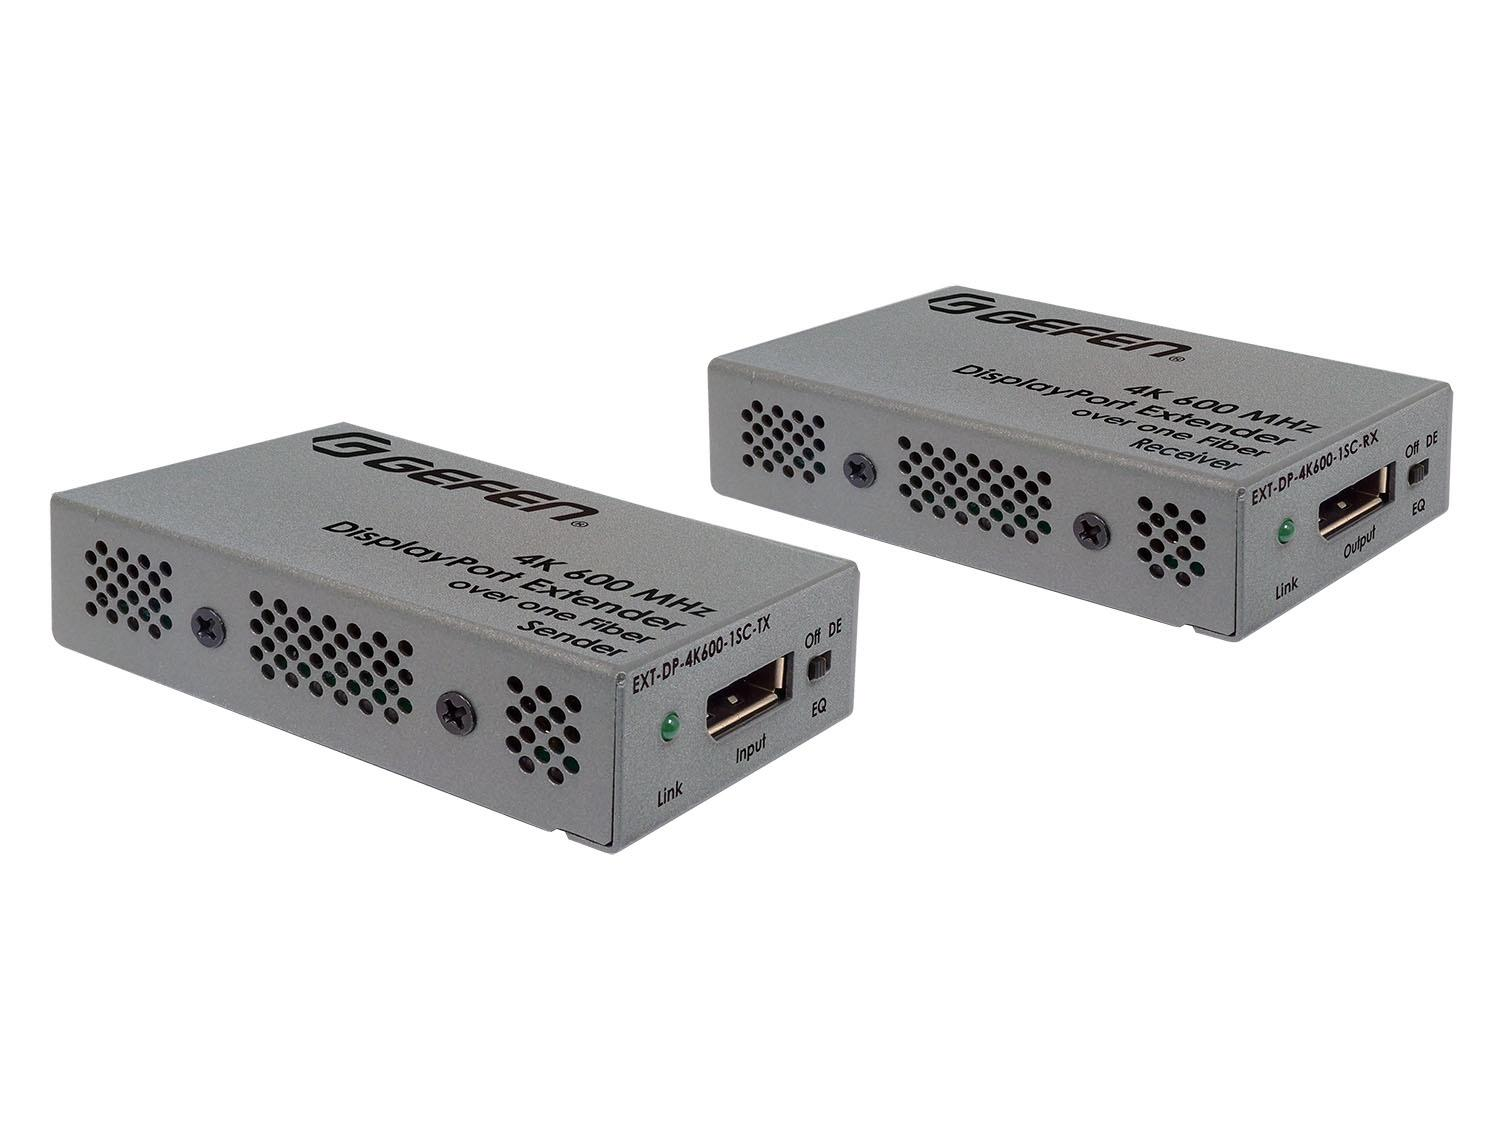 Gefen EXT-DP-4K600-1SC 4K/600MHz DisplayPort Extender (Transmitter/Receiver) Kit over 1 SC-Terminated Fiber Optic Cable